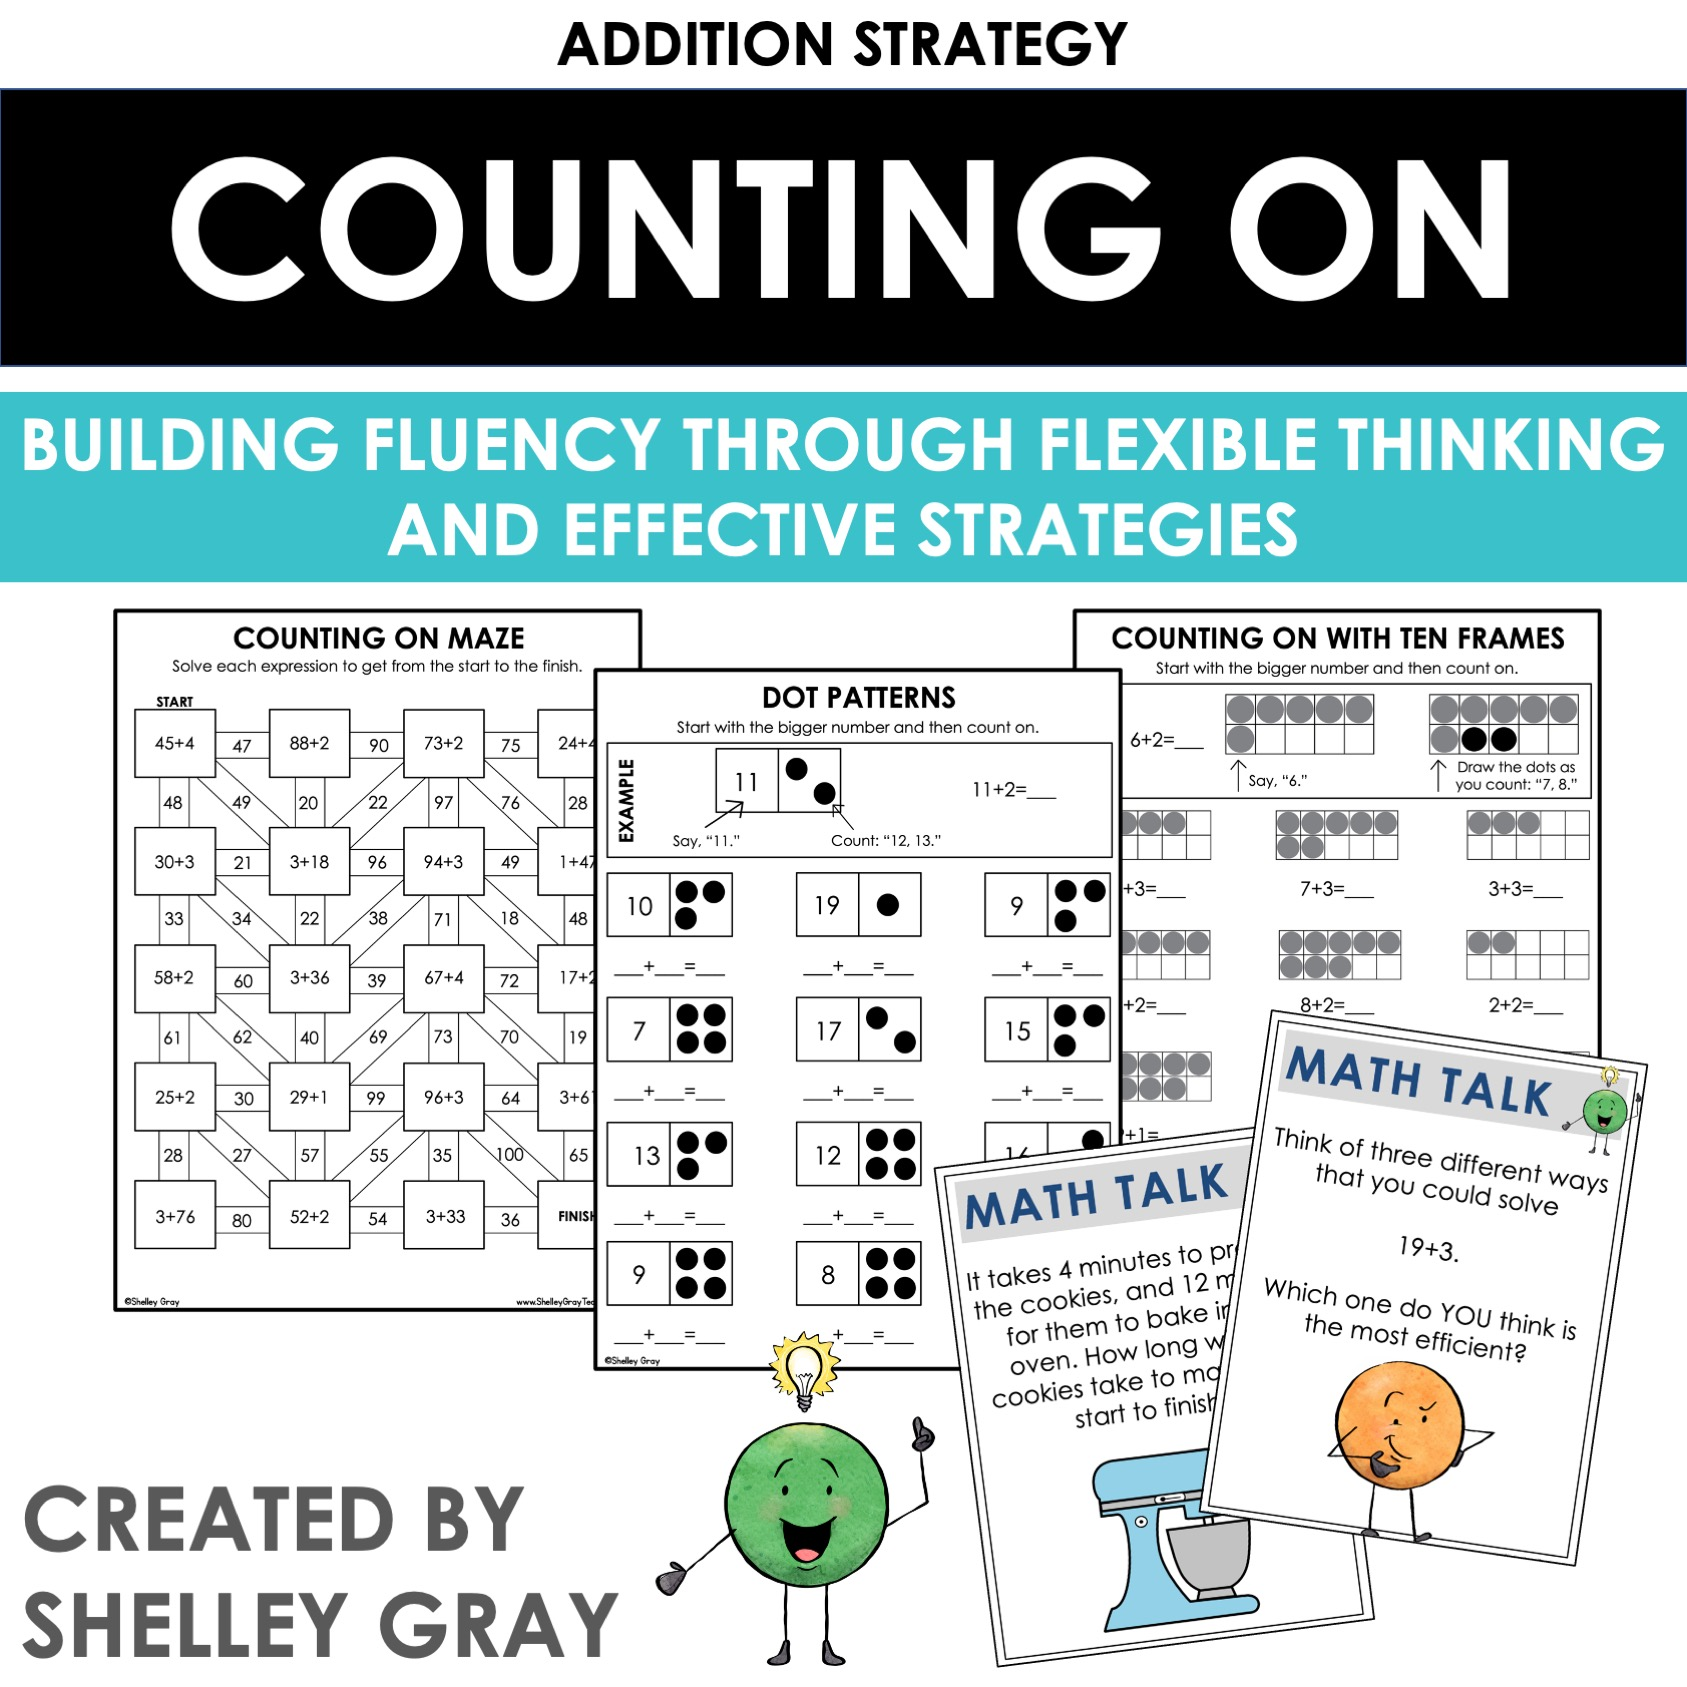 hight resolution of Counting On: An Addition Strategy - Shelley Gray